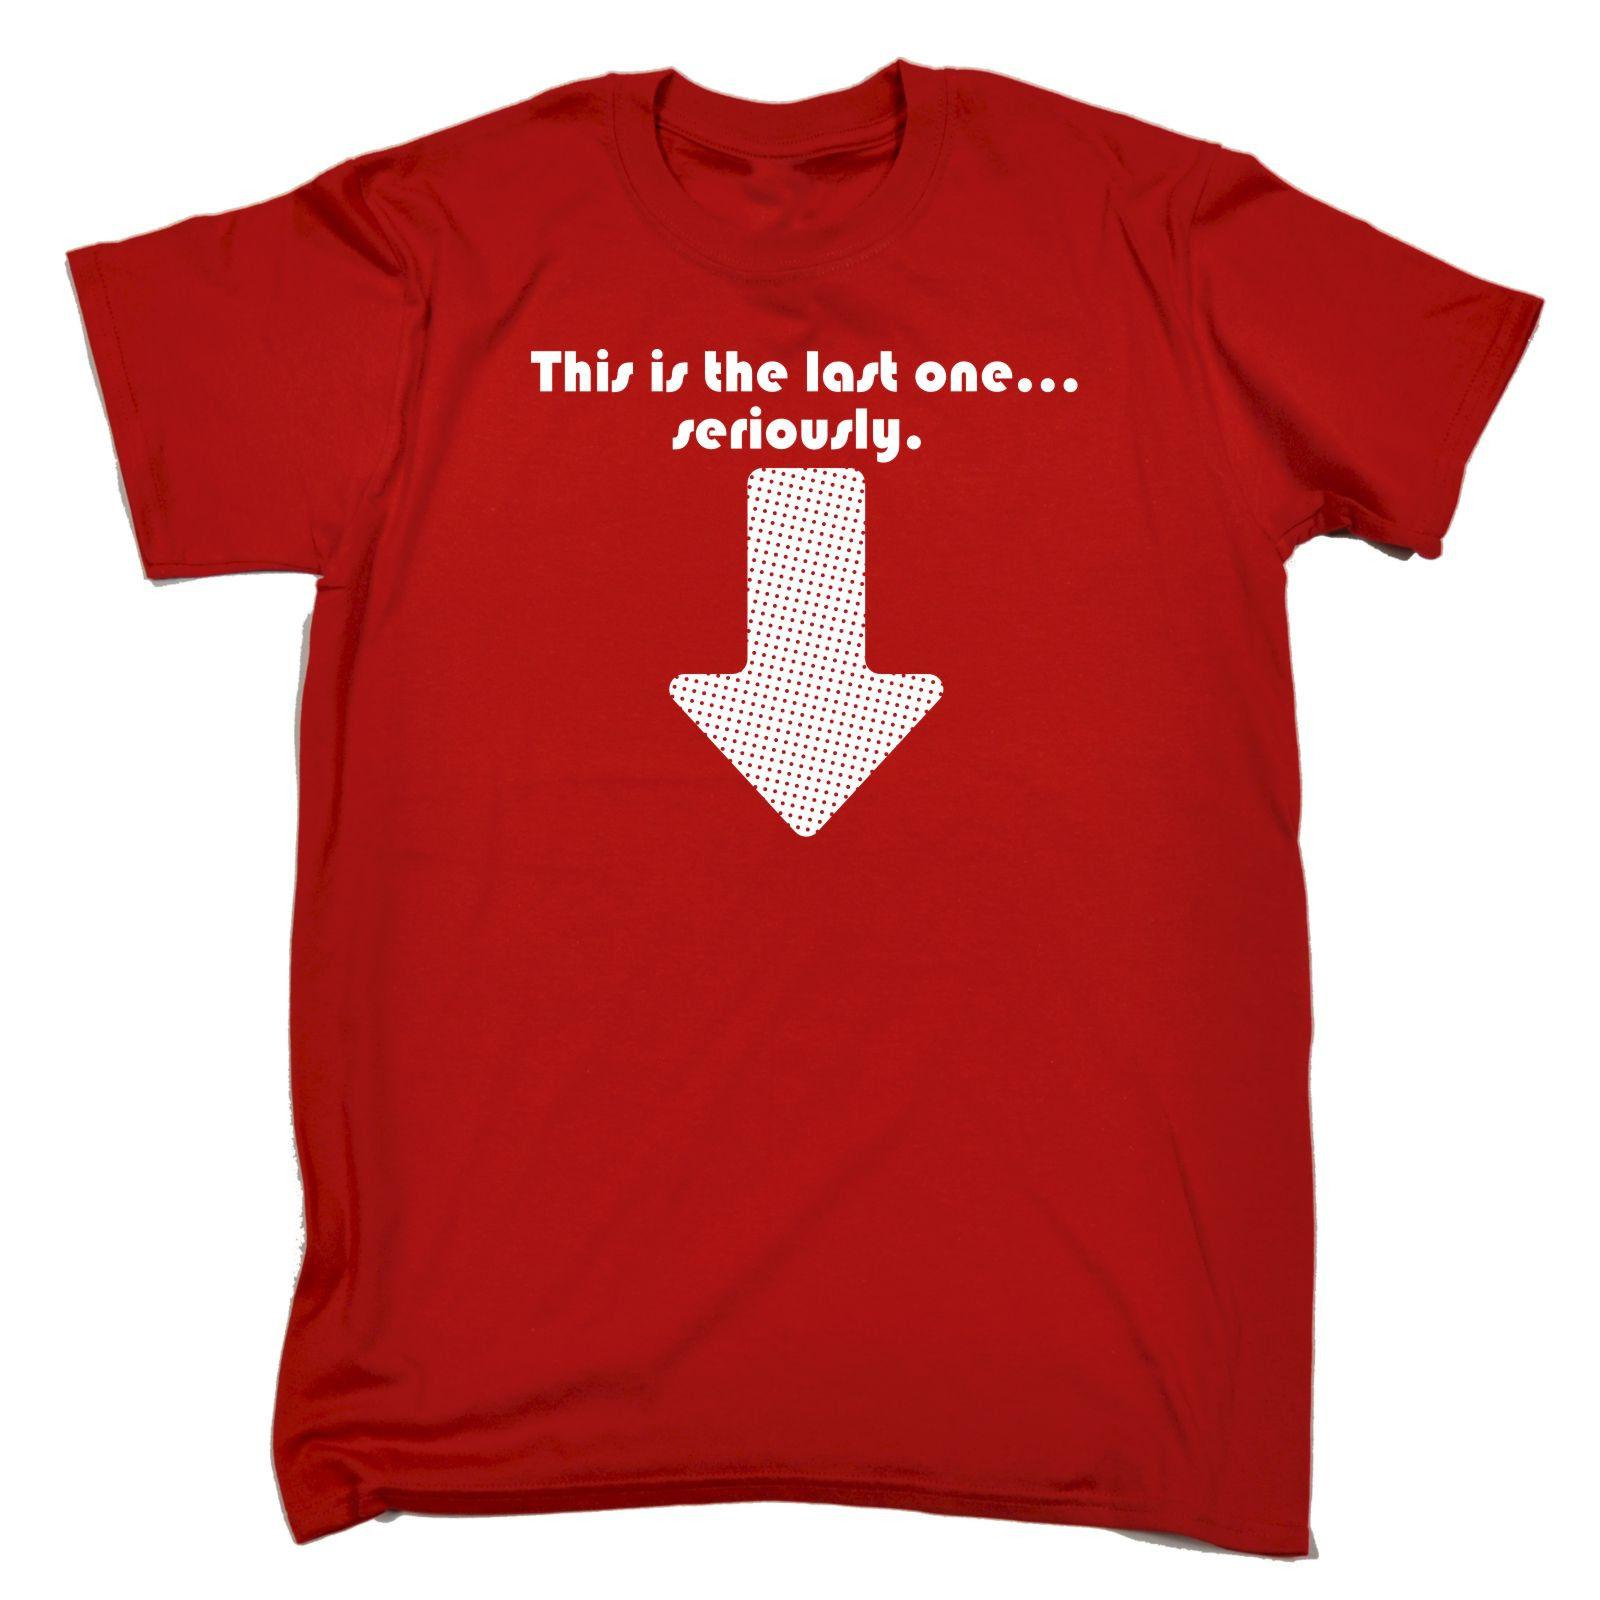 This Is The Last One Baby MENS T SHIRT Tee Birthday Parents Husband Wife Gift Day Shirts Coolest Shirt From Viptshirt 1572